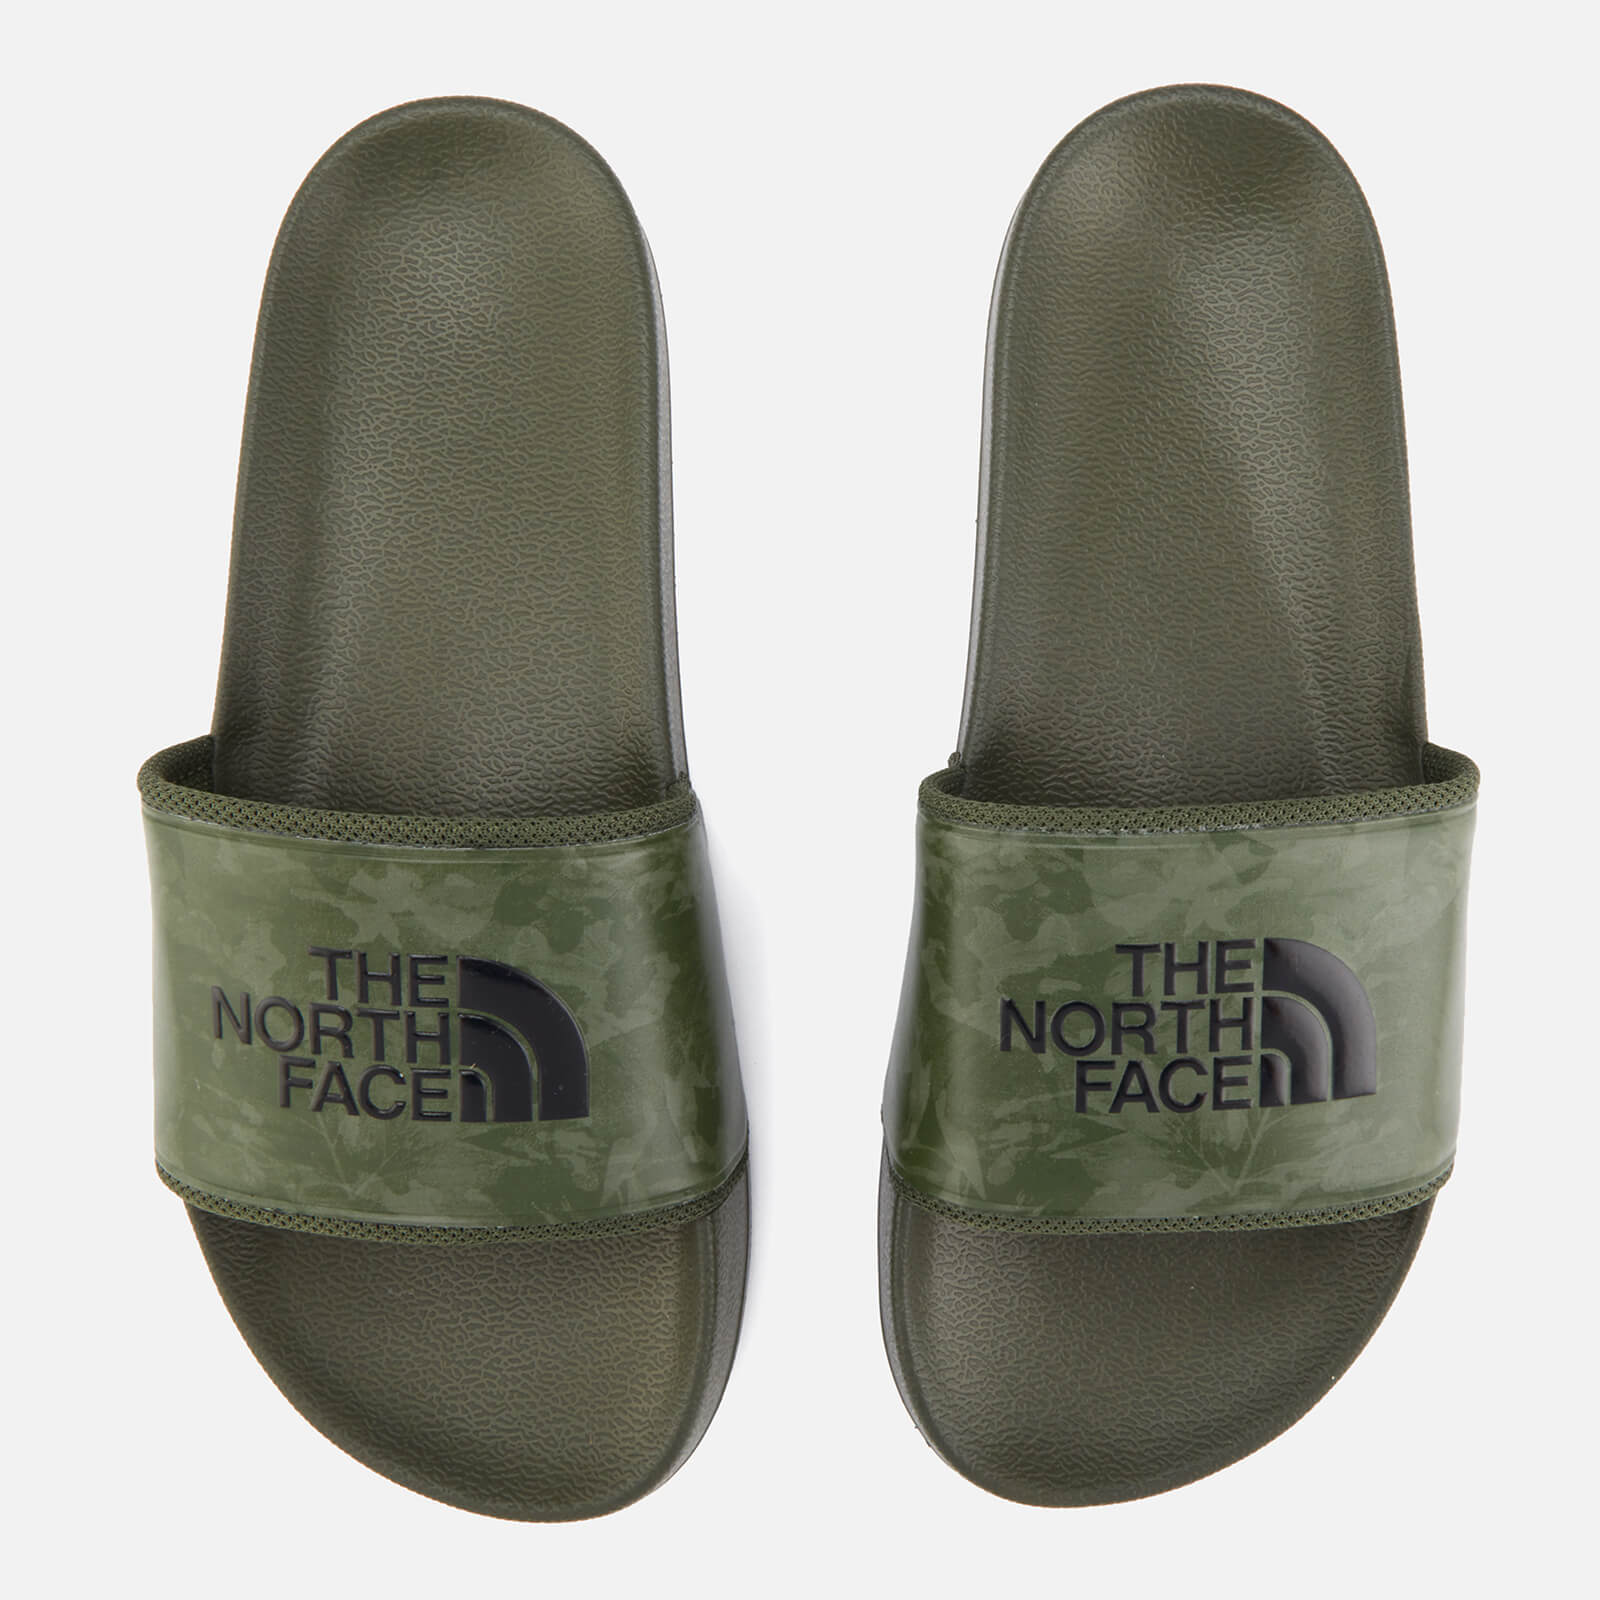 fc8679c96 The North Face Men's Base Camp II Slide Sandals - English Green Tropical  Camo/English Green